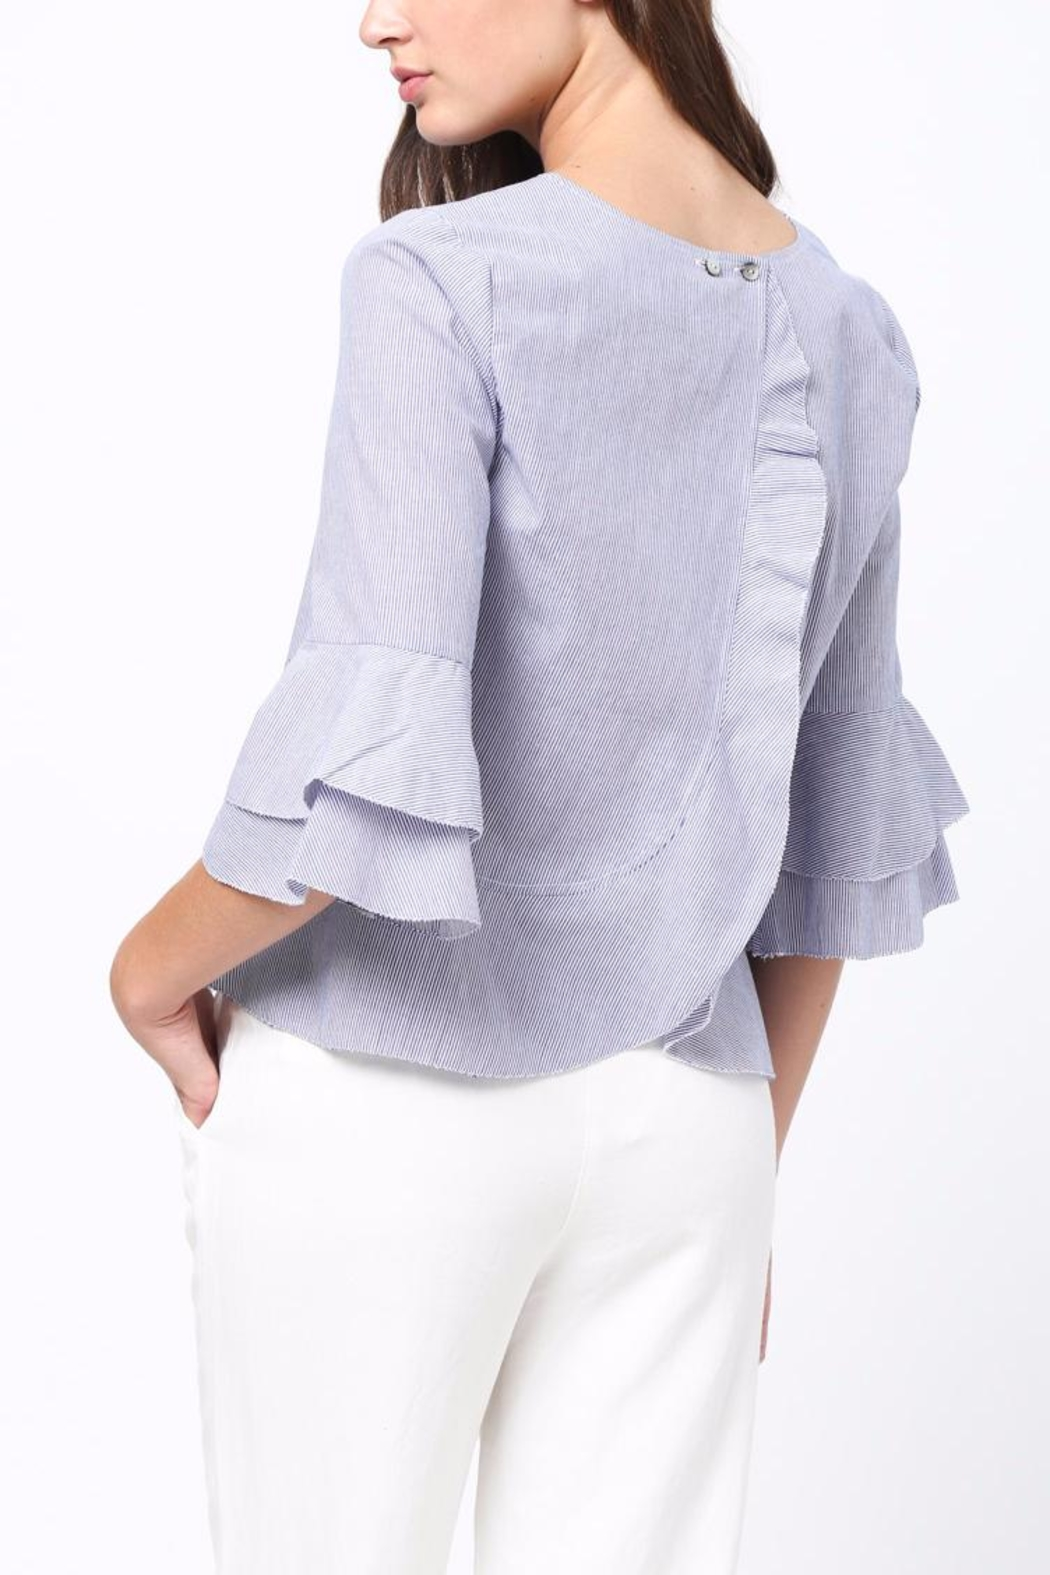 Movint Ruffle Detaliled Top - Front Full Image